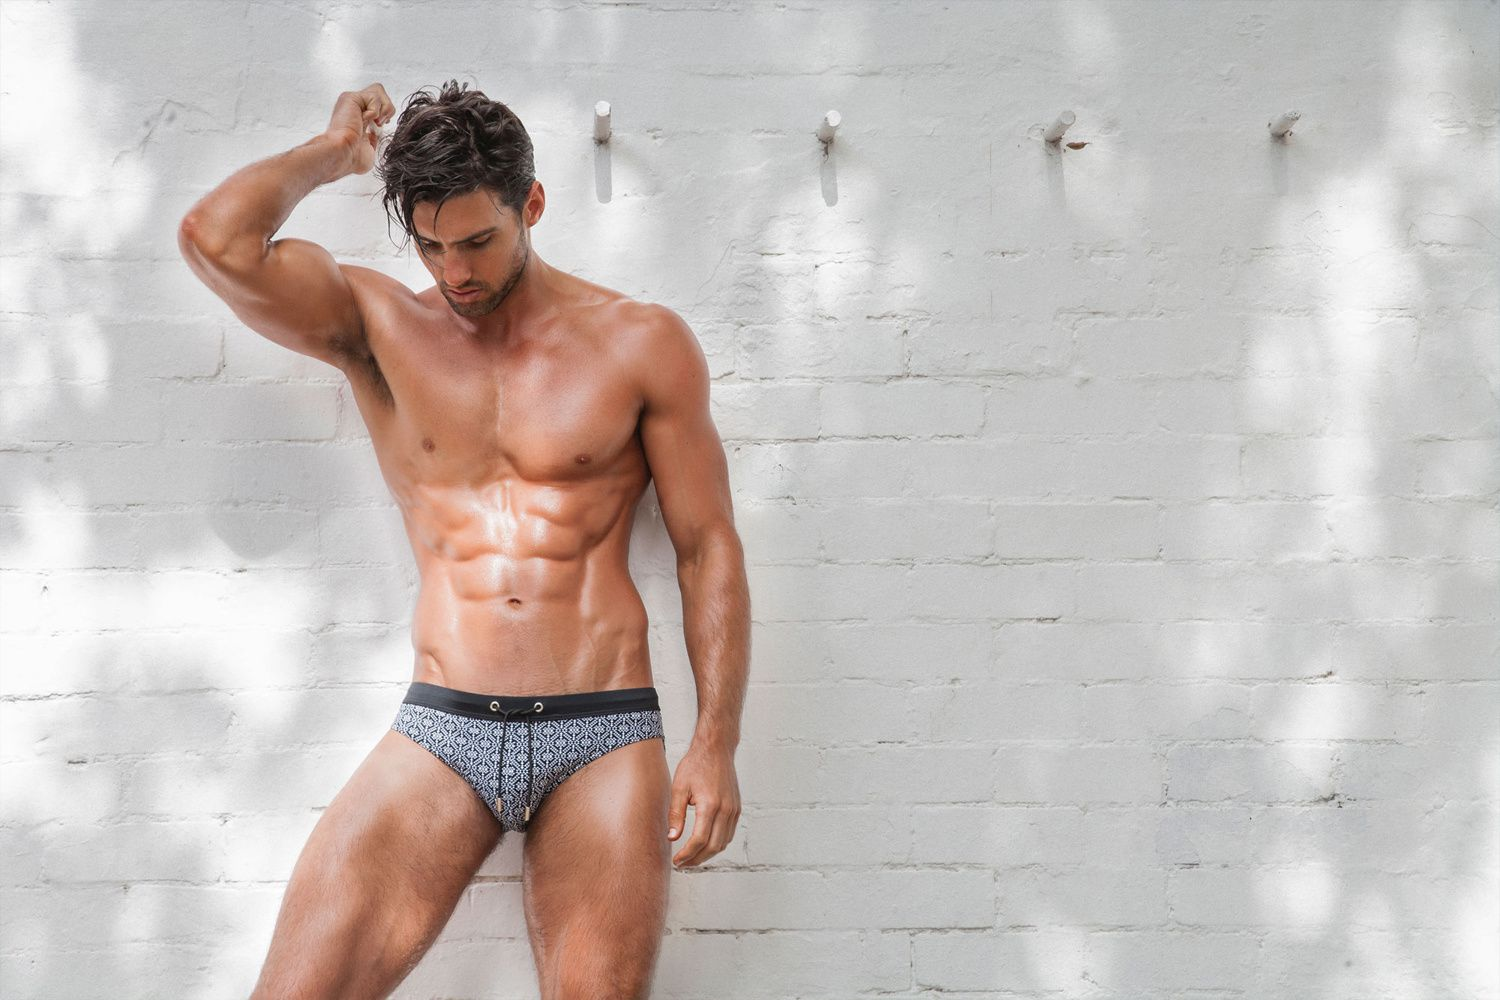 Teamm8 : New collections